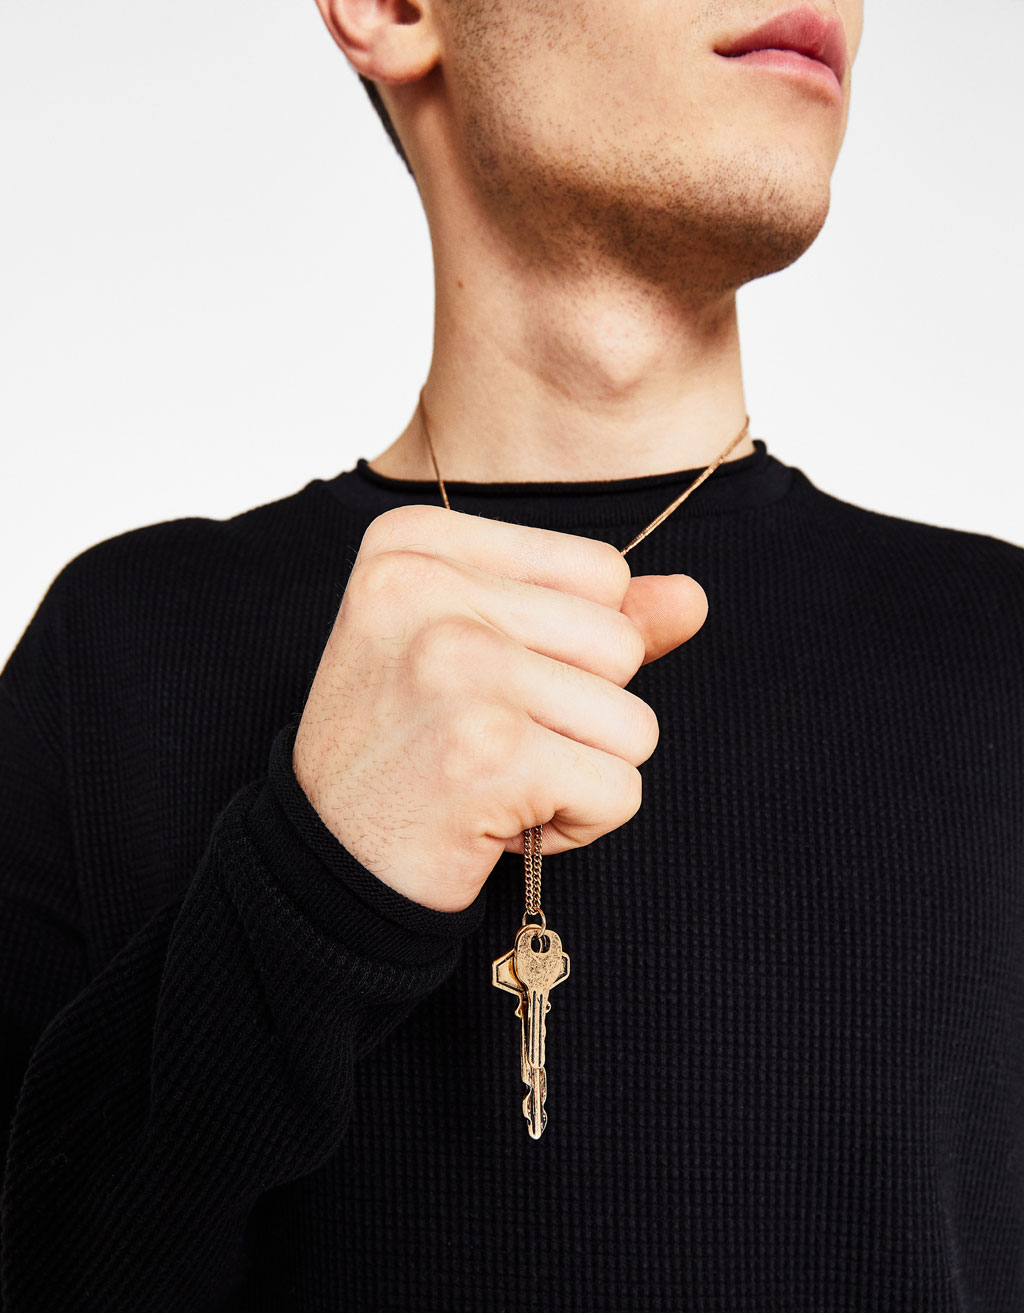 Chain pendant with key